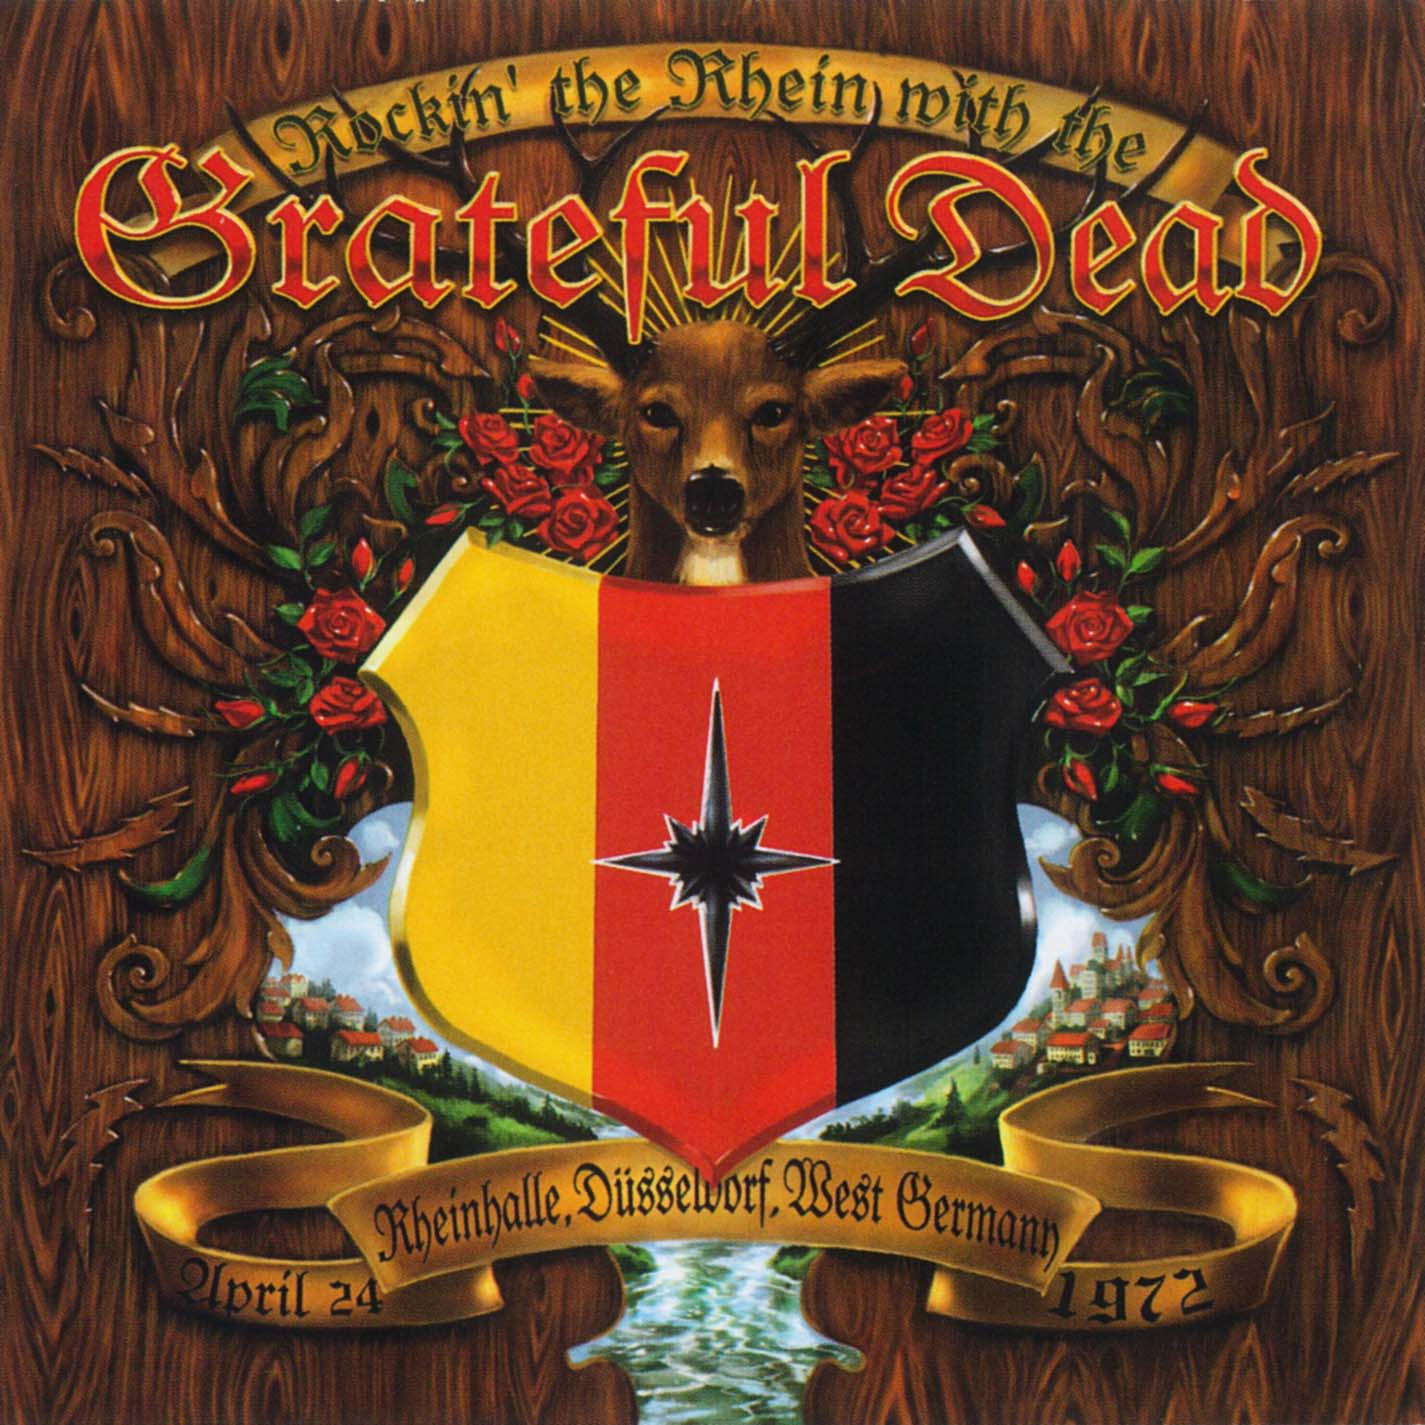 Grateful Dead Rockin' the Rhein album cover artwork